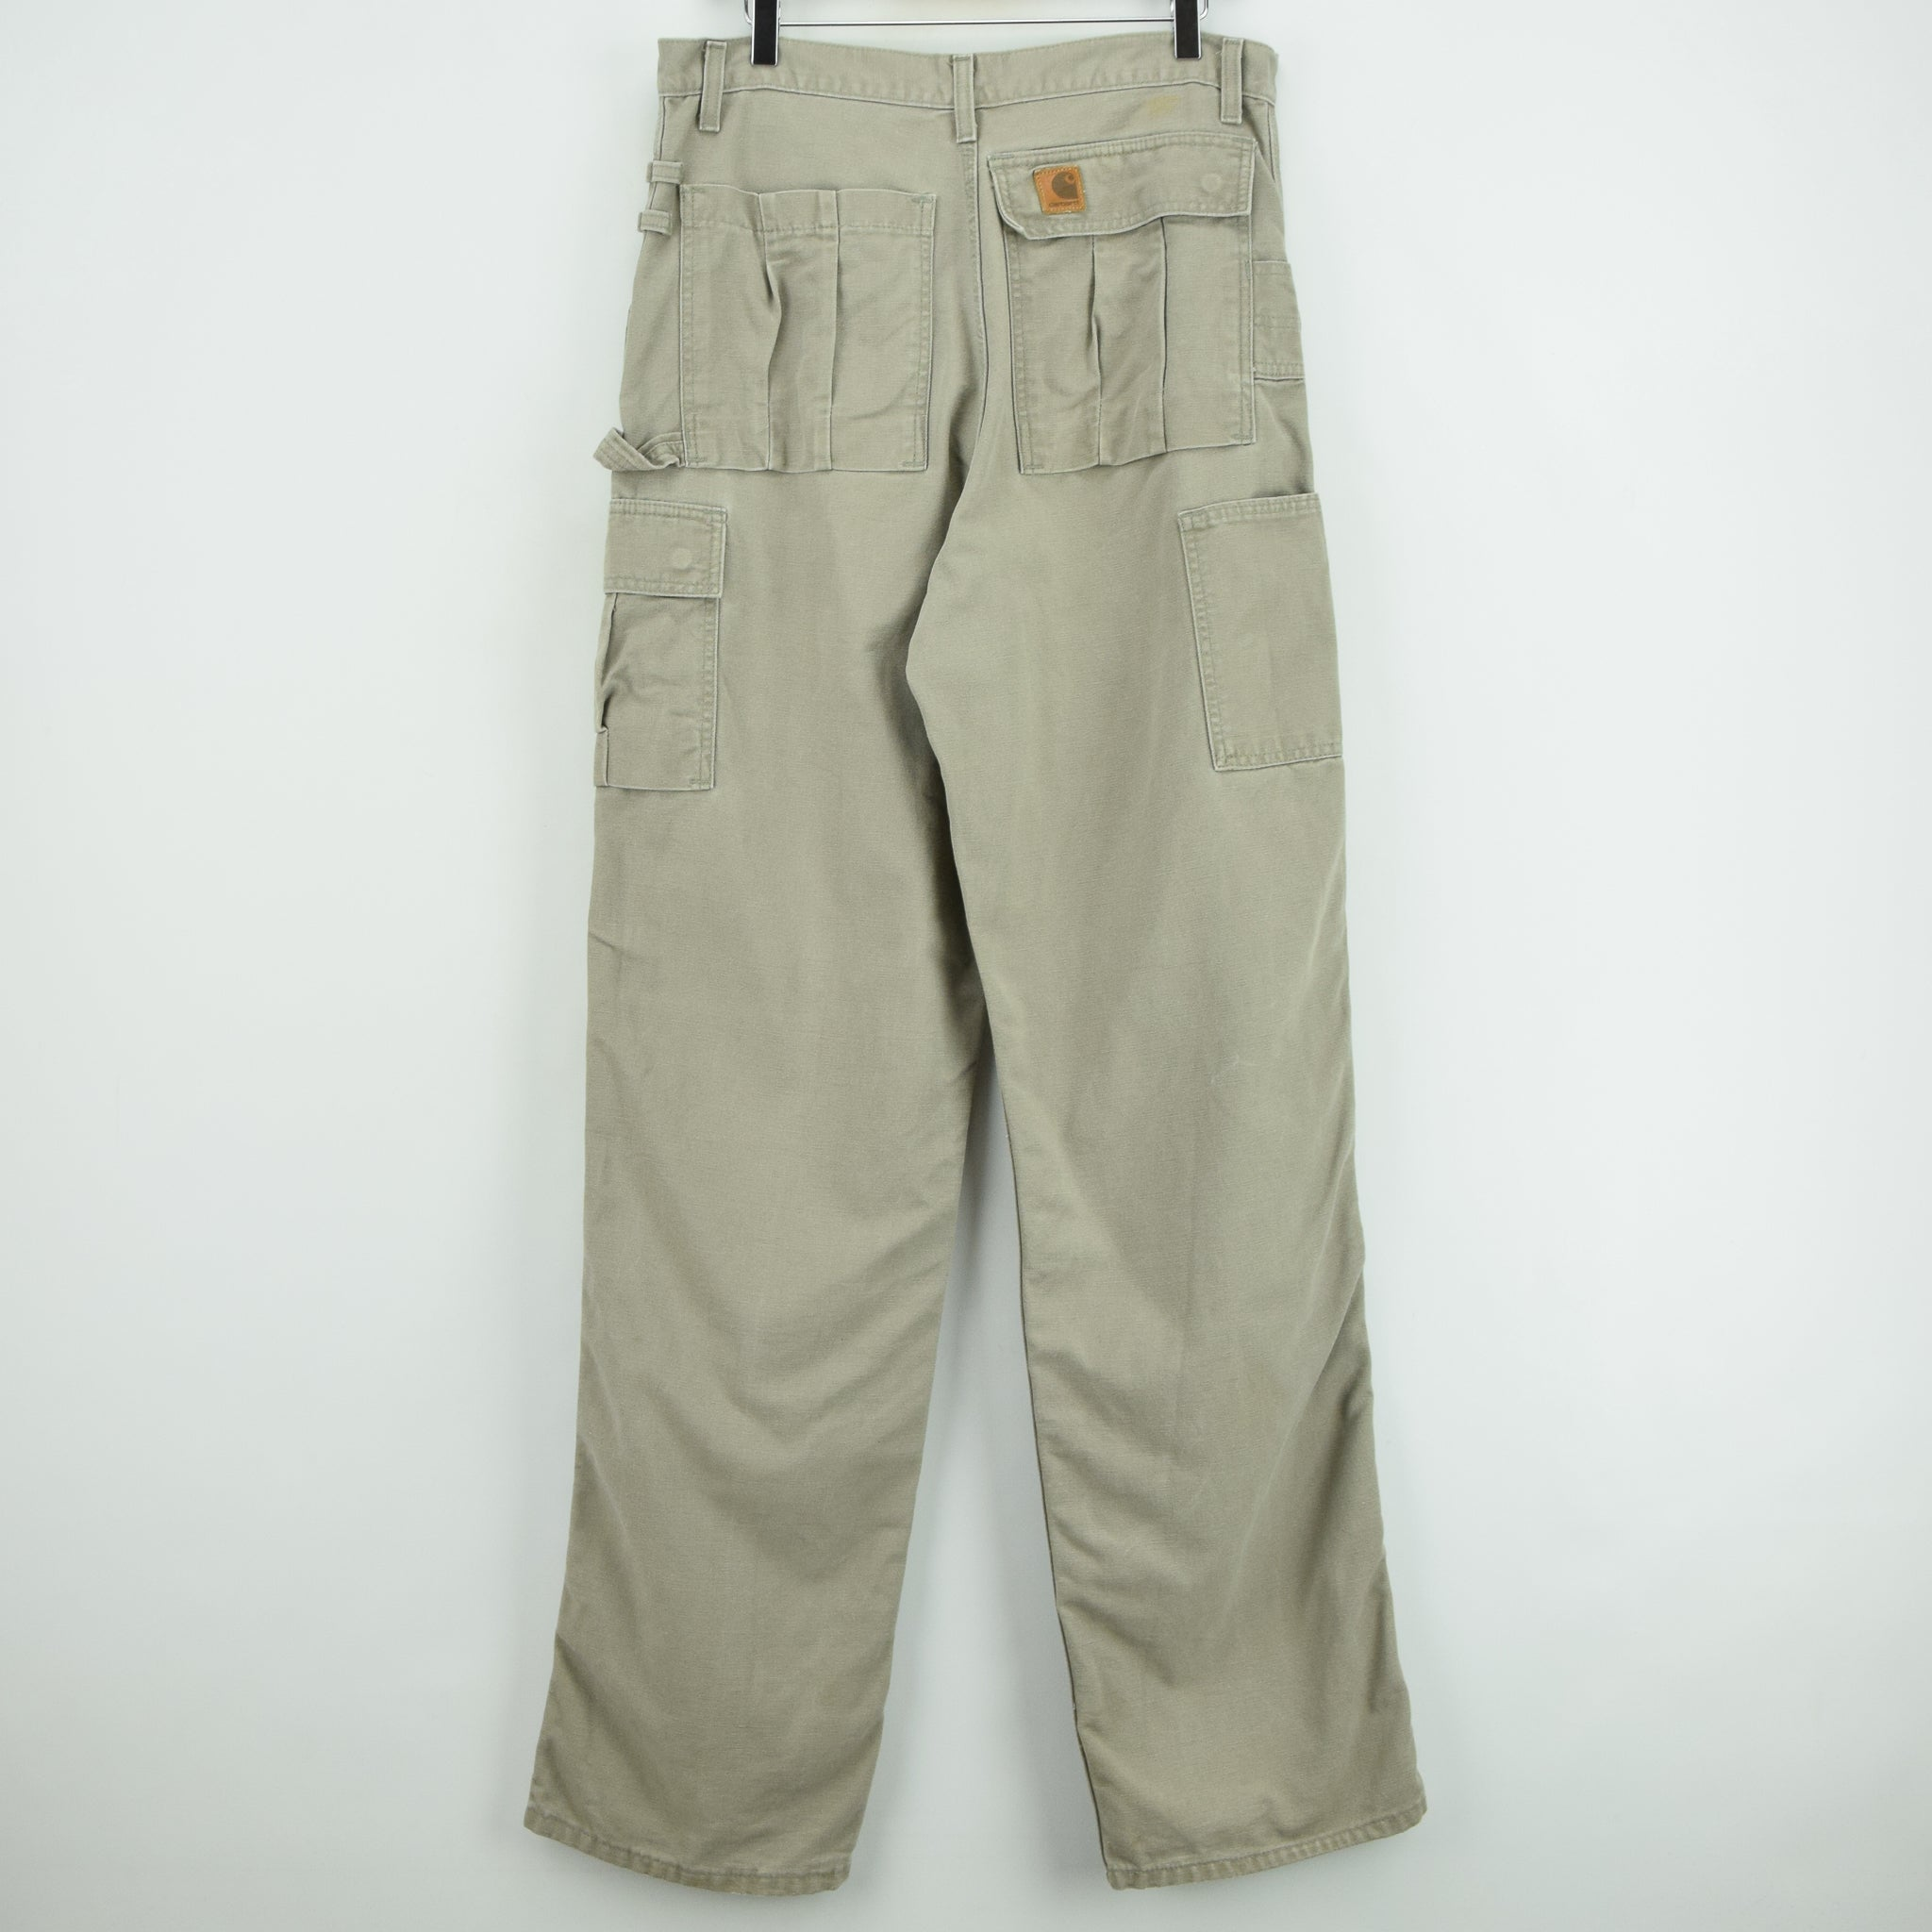 Vintage Carhartt Stone Duck Canvas Utility Work Cargo Pant 32 W 34 L back